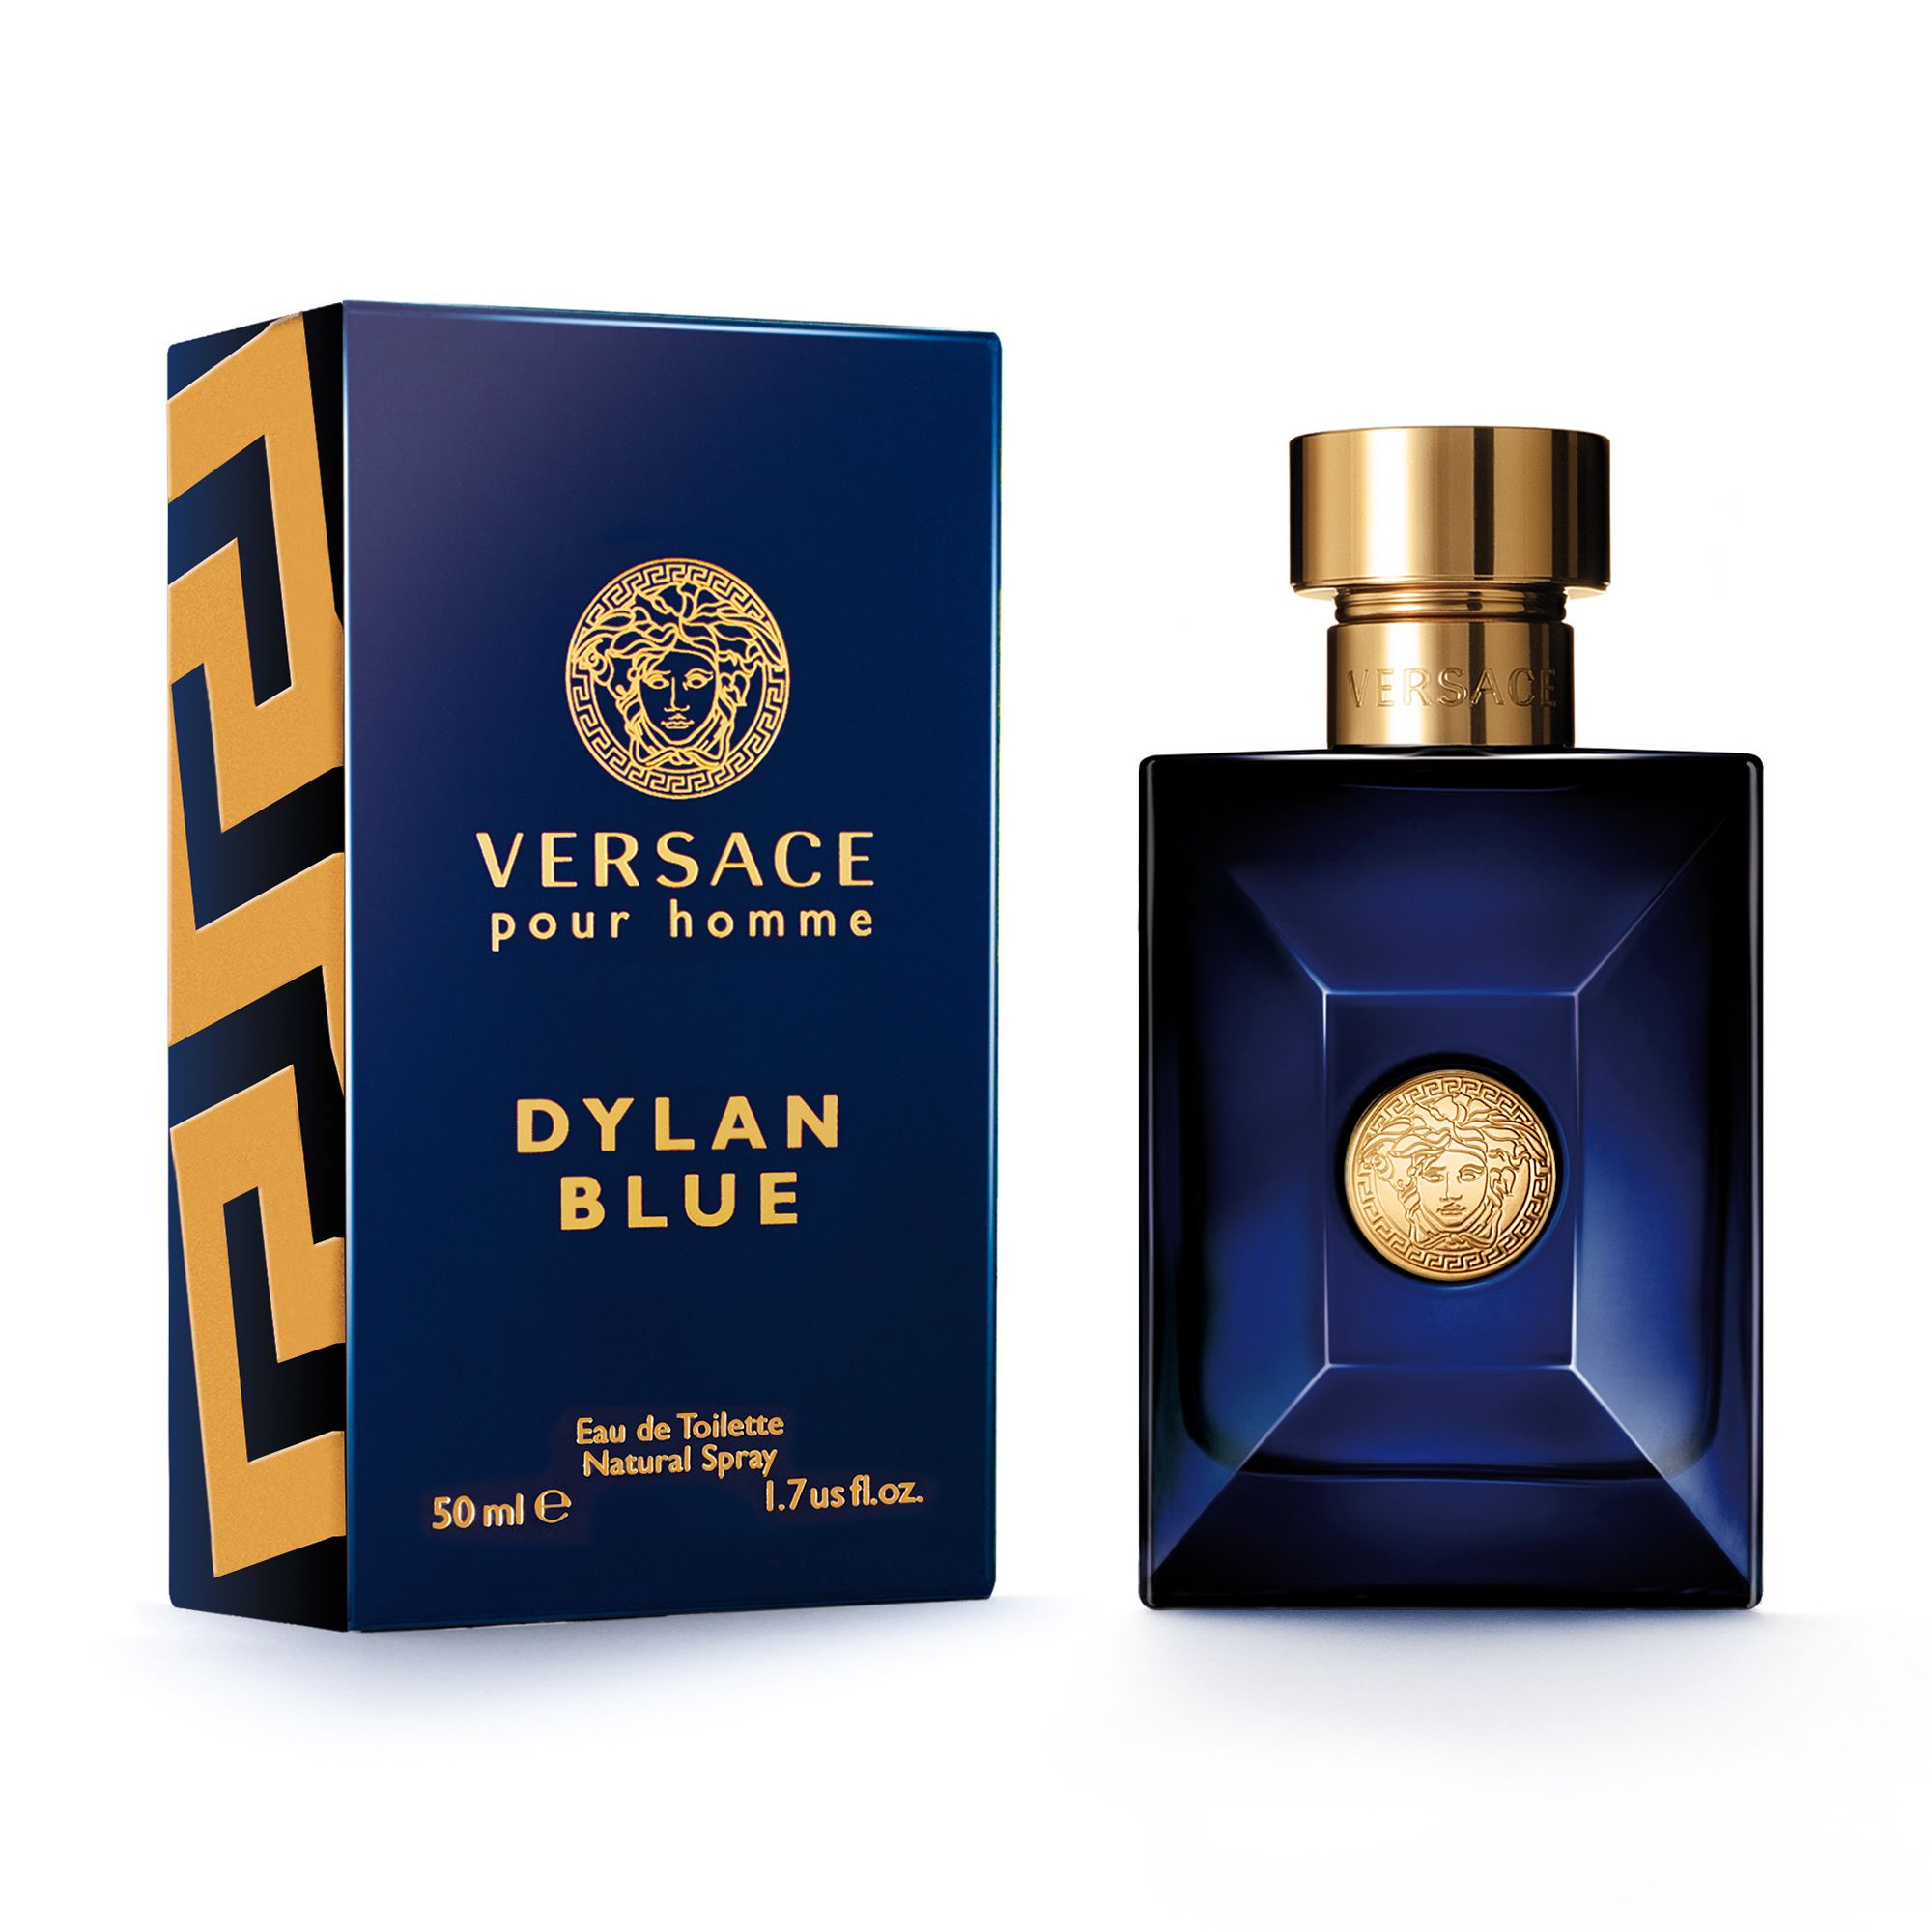 Versace ve4051b blue shiny gb1 Find it at Shopwiki